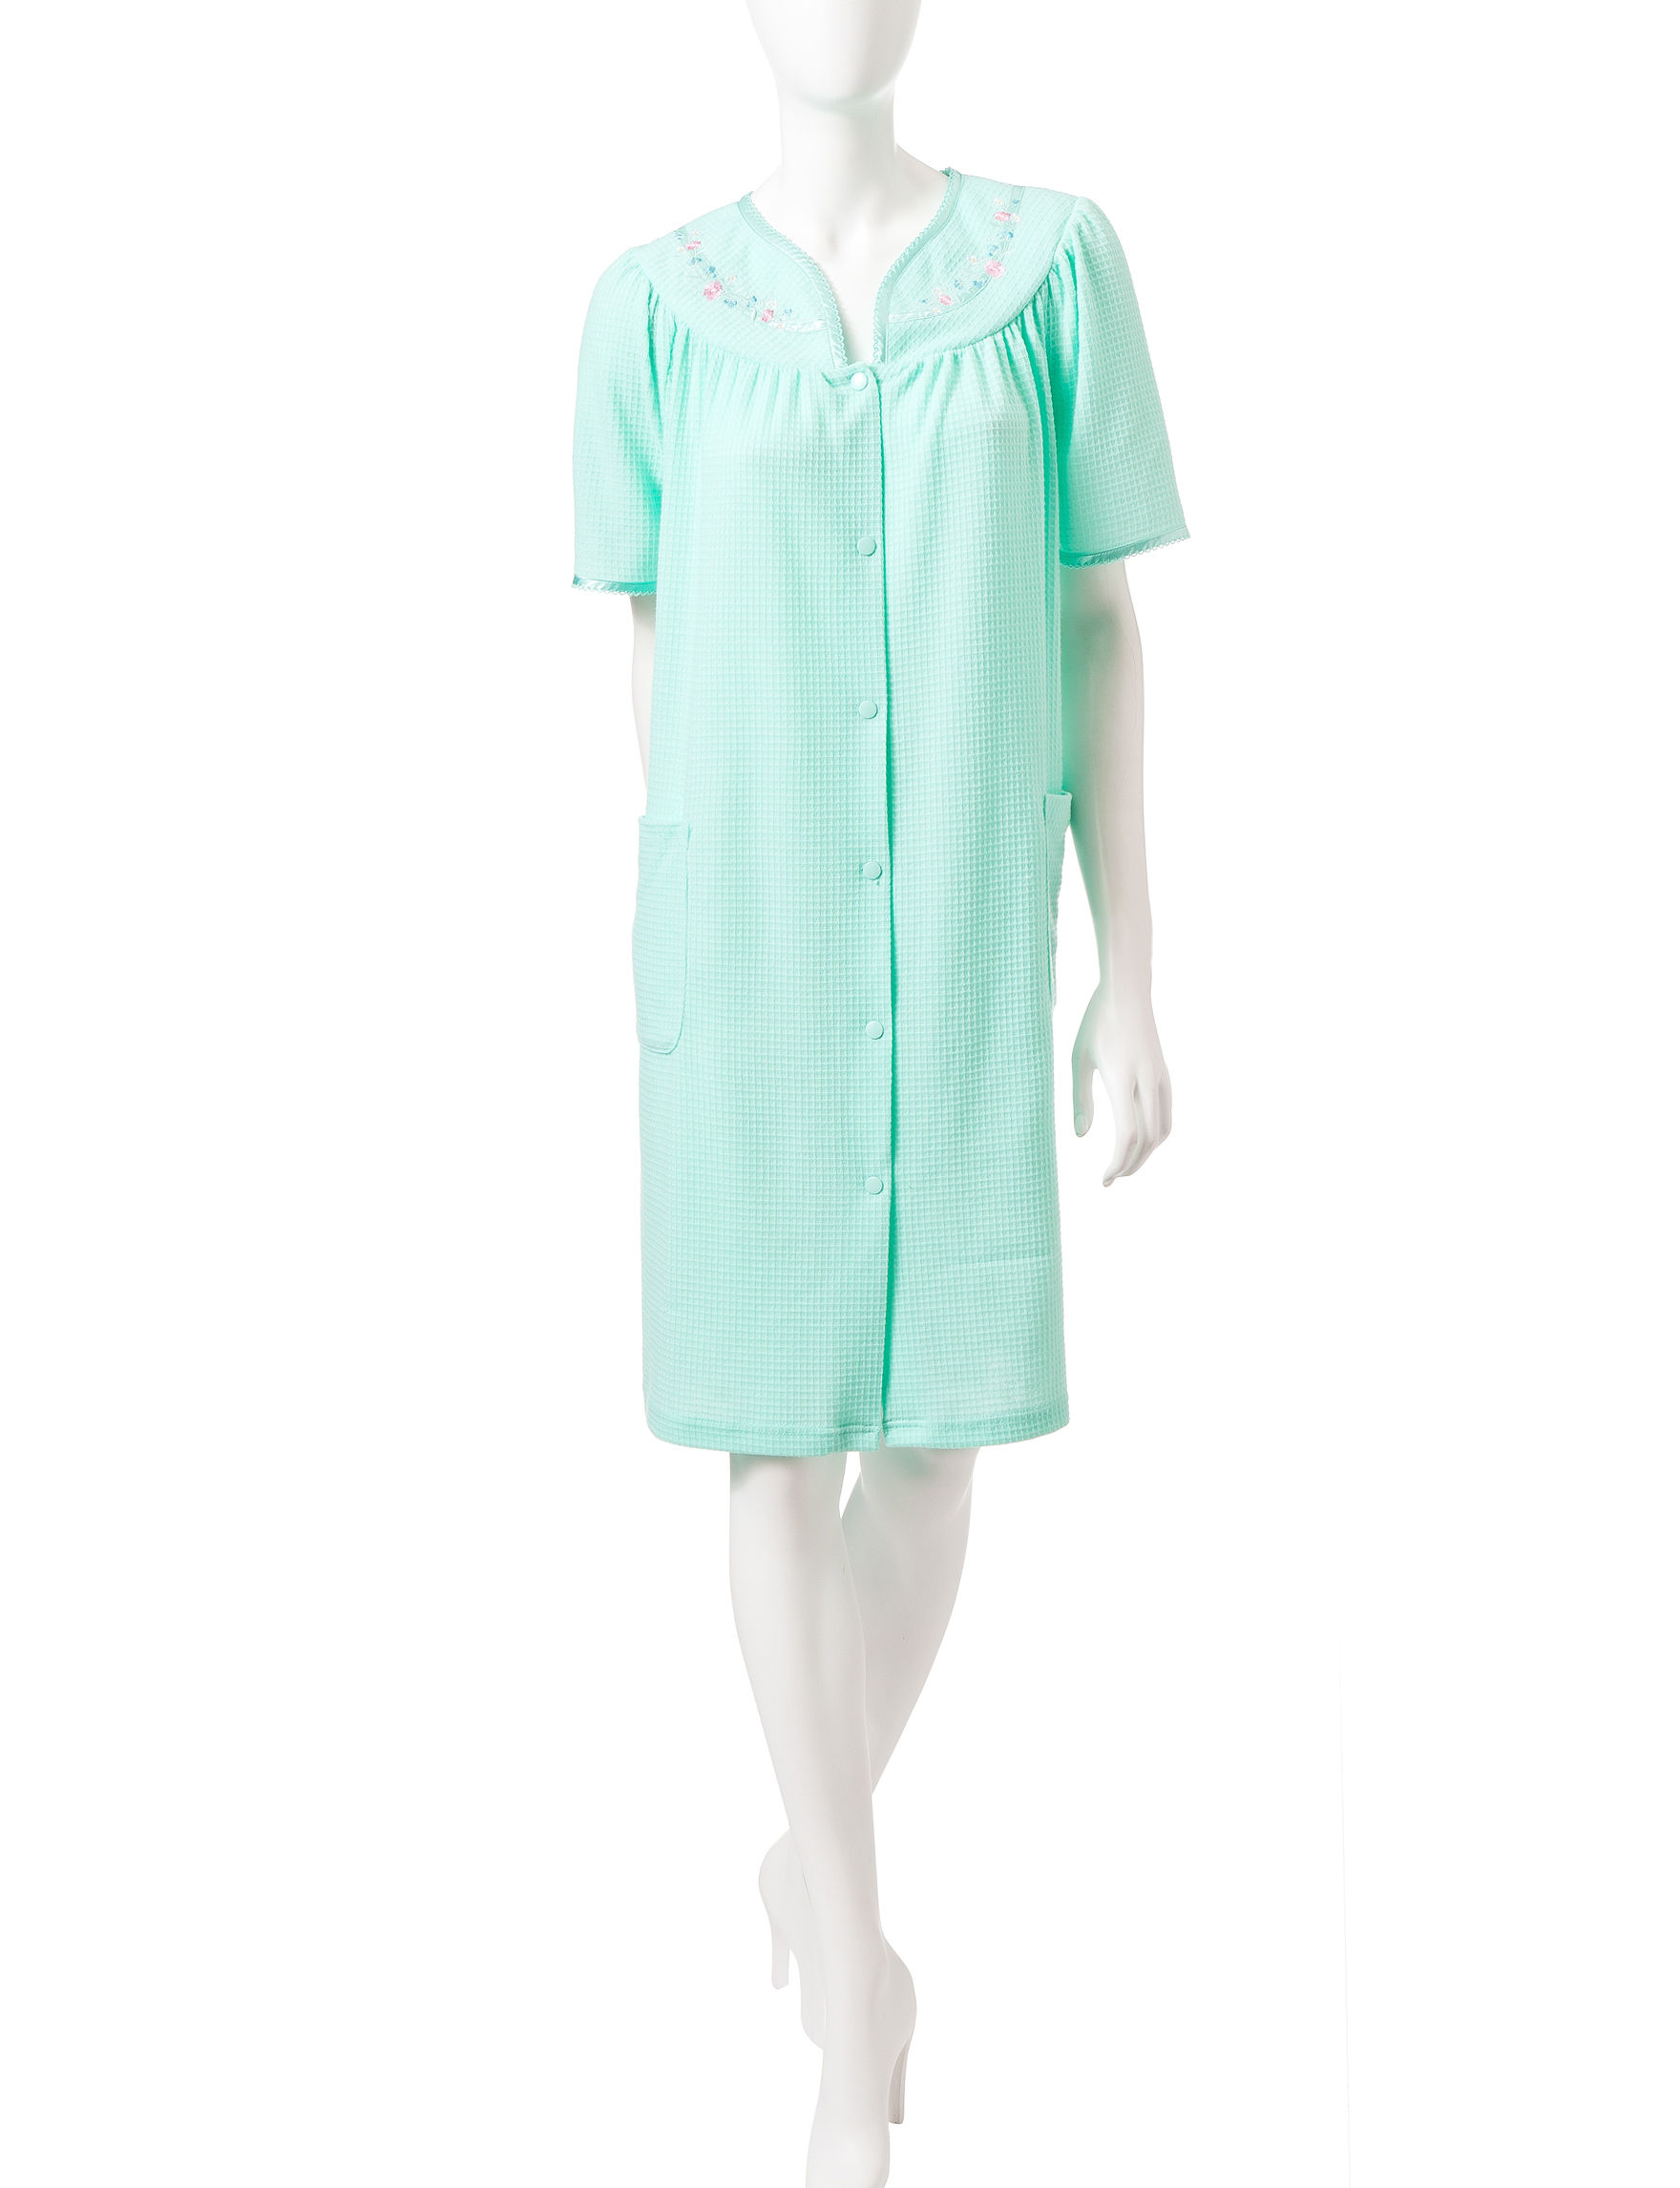 Jasmine Rose Mint Robes, Wraps & Dusters